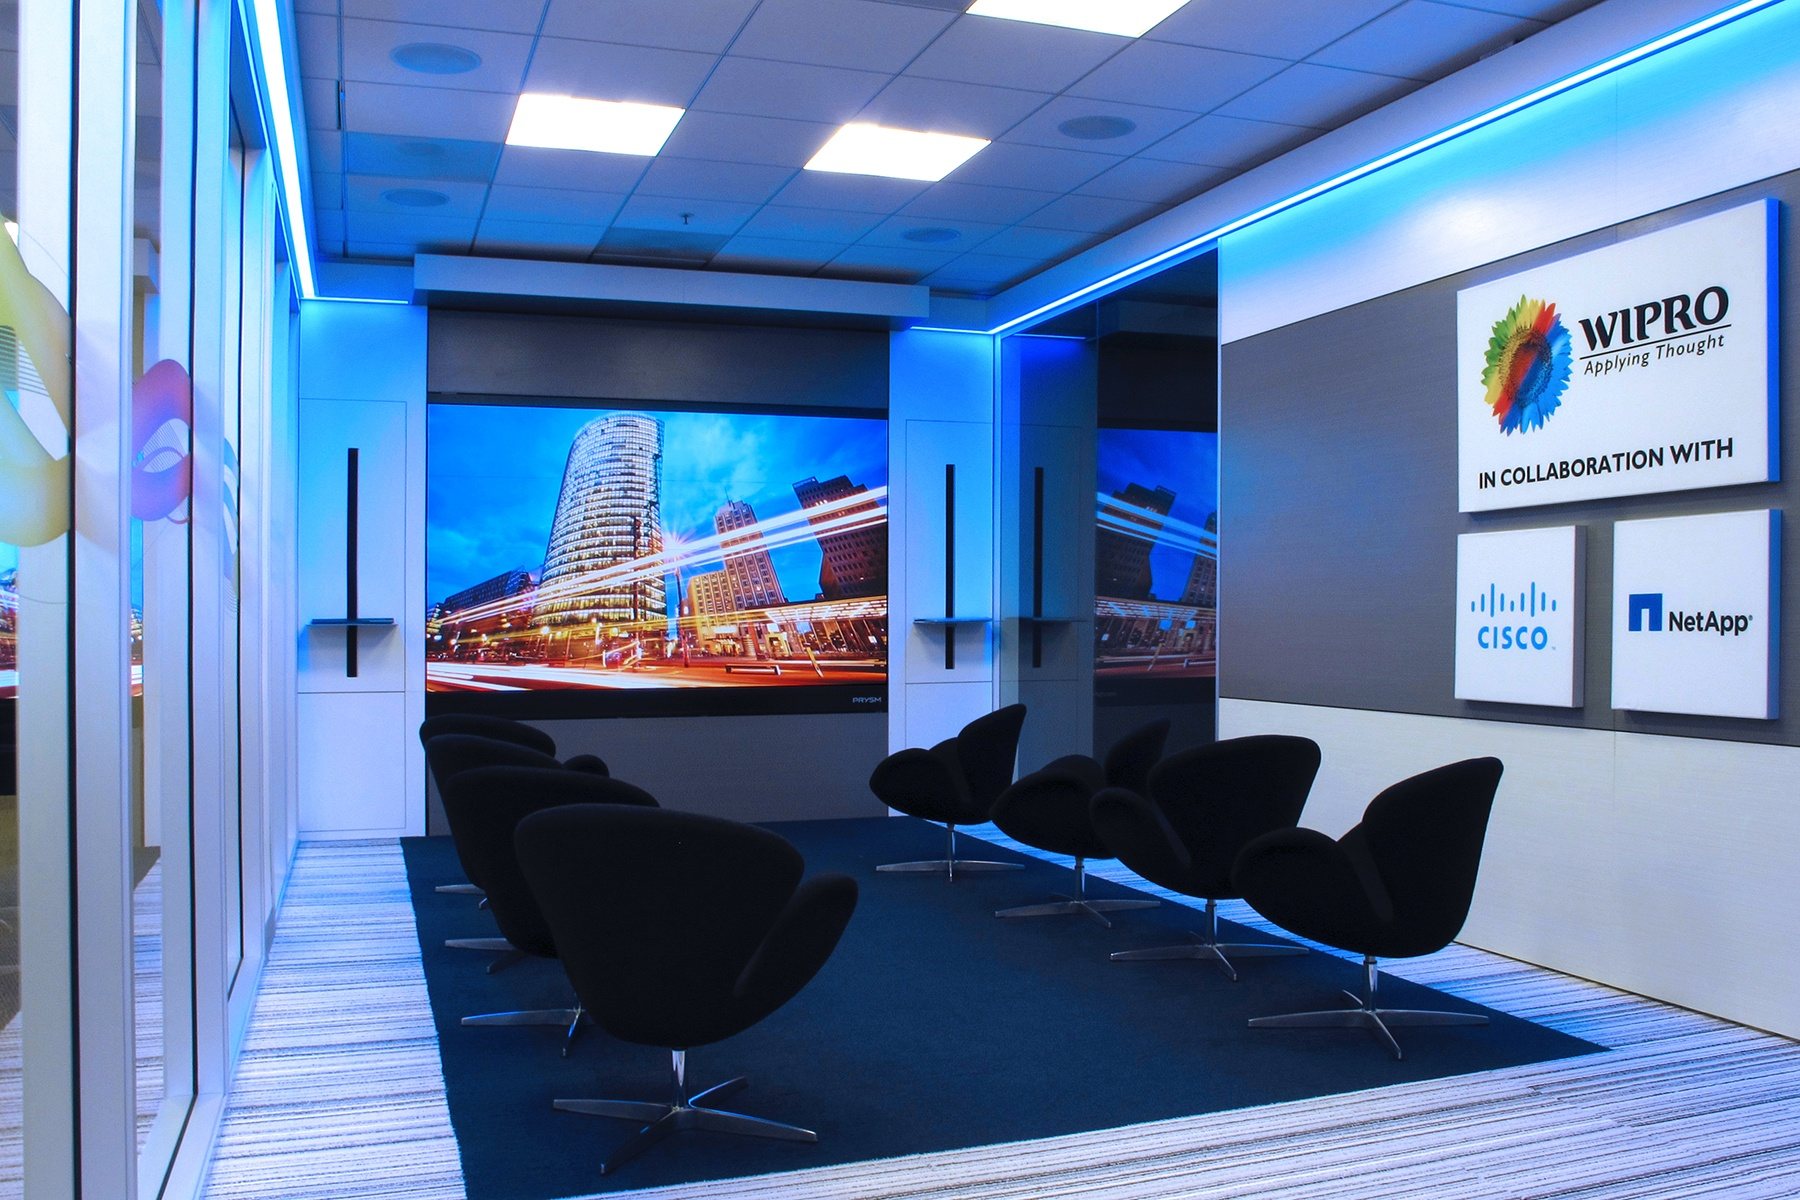 Prysm Video Wall Brings New Collaboration Capabilities to Wipro